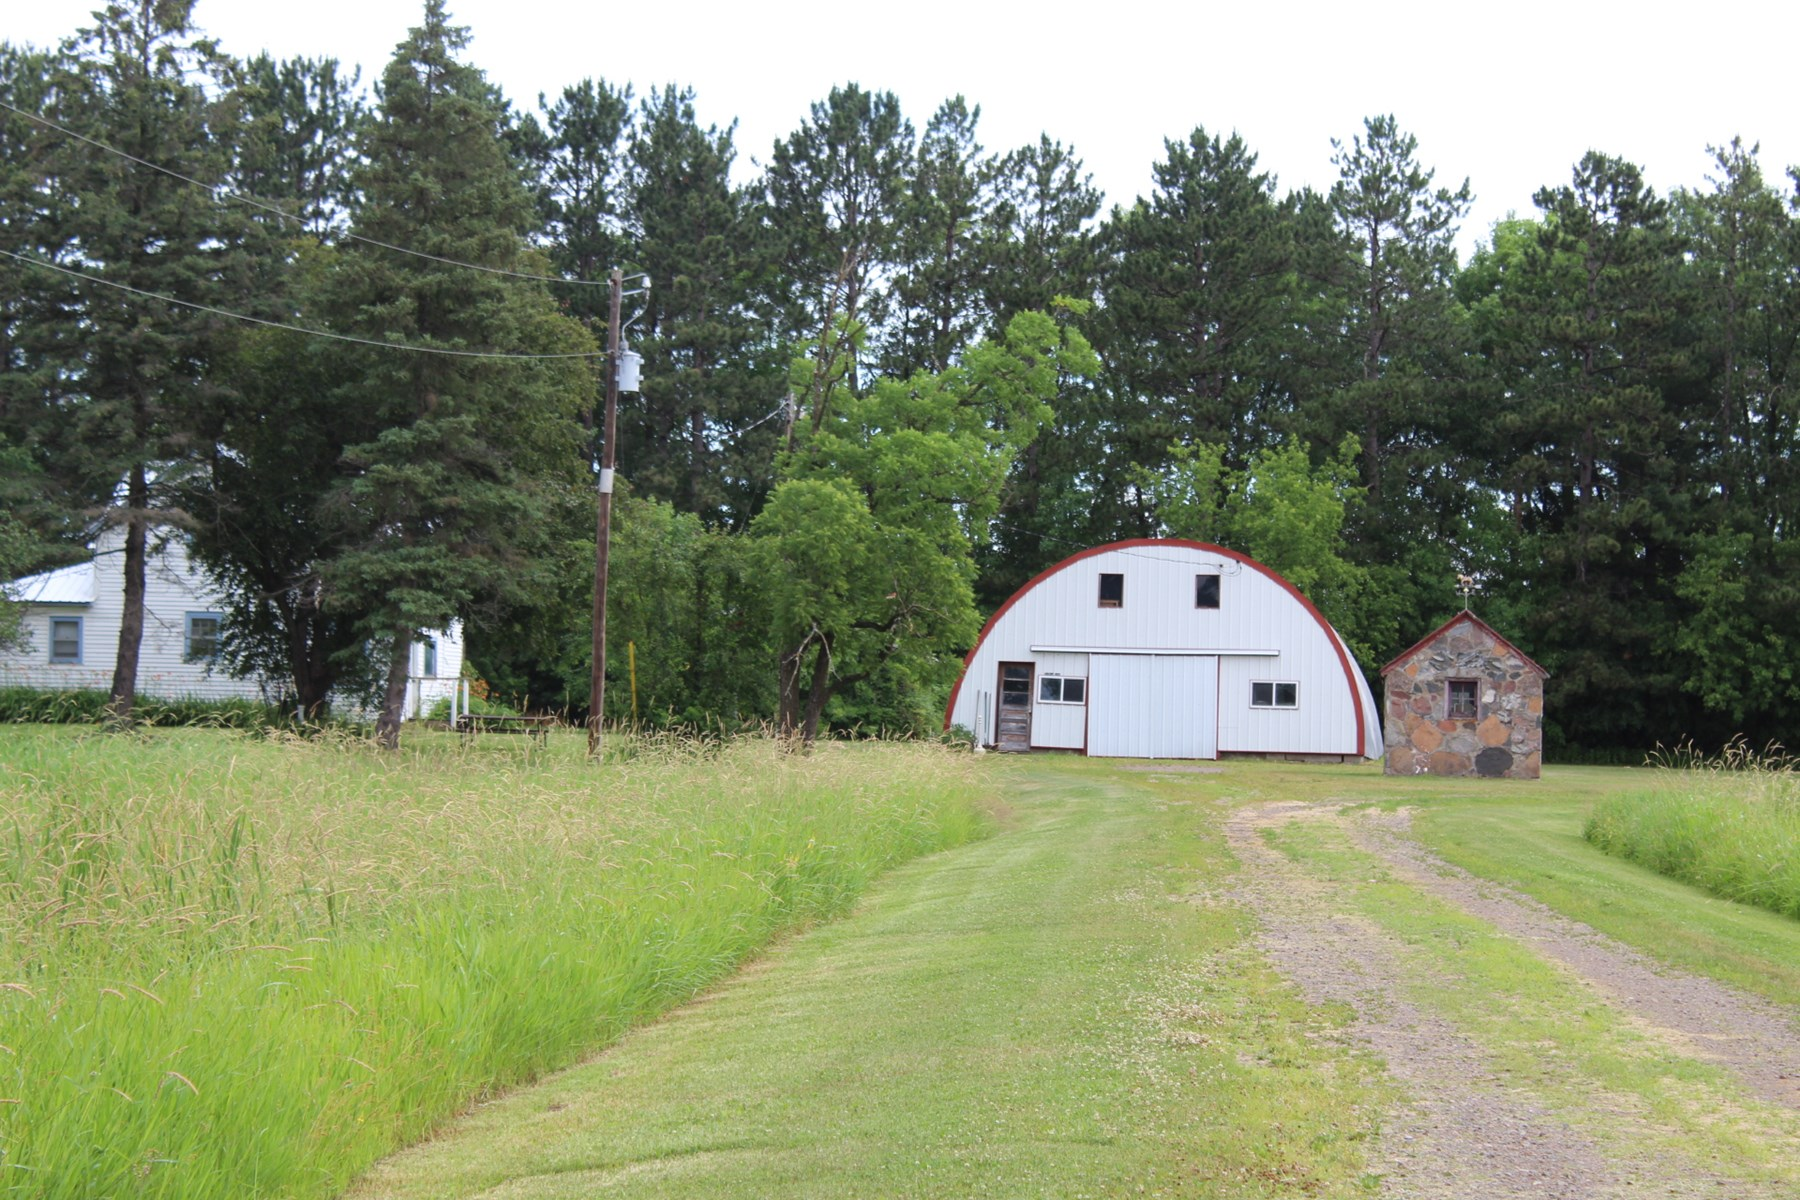 Handymans Hobby Farm for Sale in Kanabec County